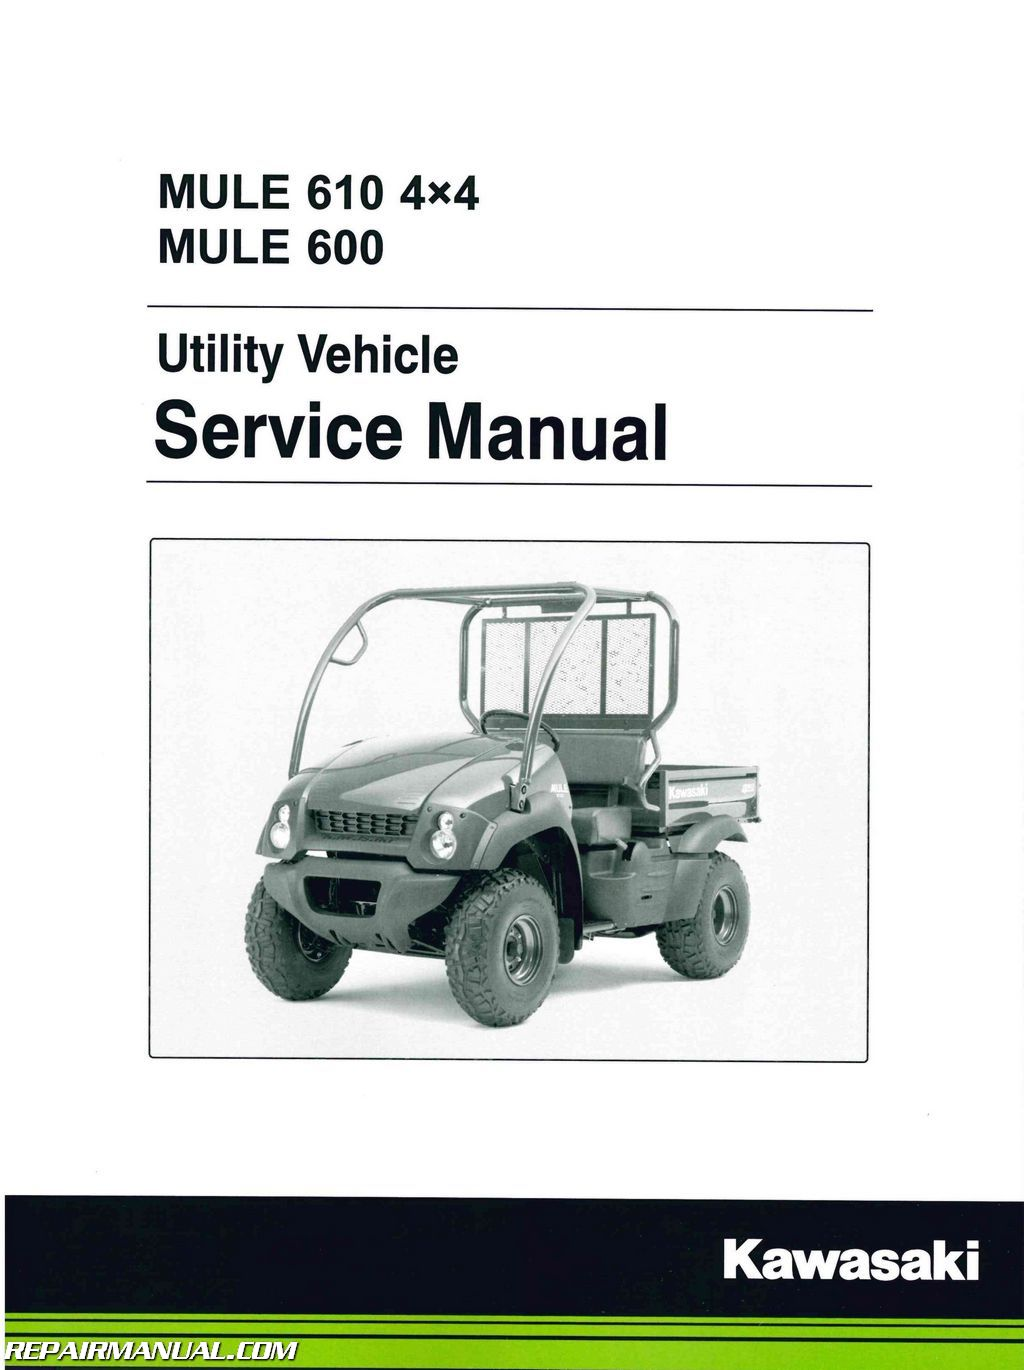 2005 2016 kawasaki kaf400 utv mule 610 4 4 600 service manual rh repairmanual com kawasaki mule 3010 owner's manual kawasaki mule owners manual free